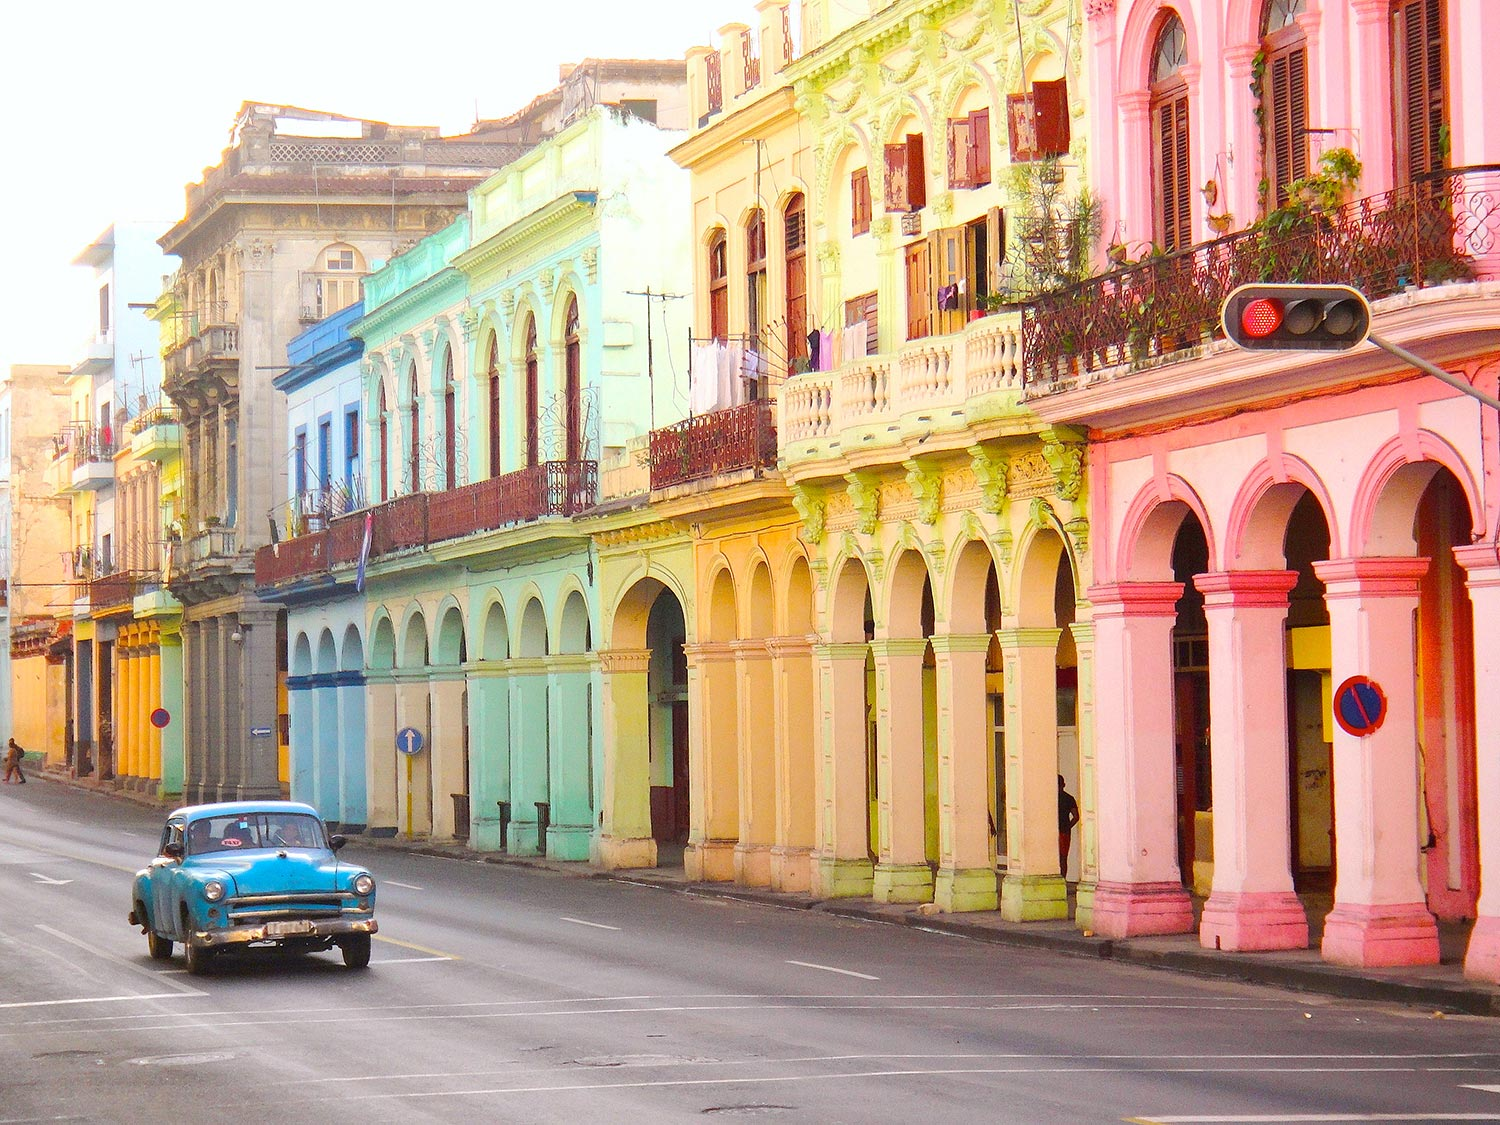 A row of buildings each a different color of the rainbow line a street in Havana